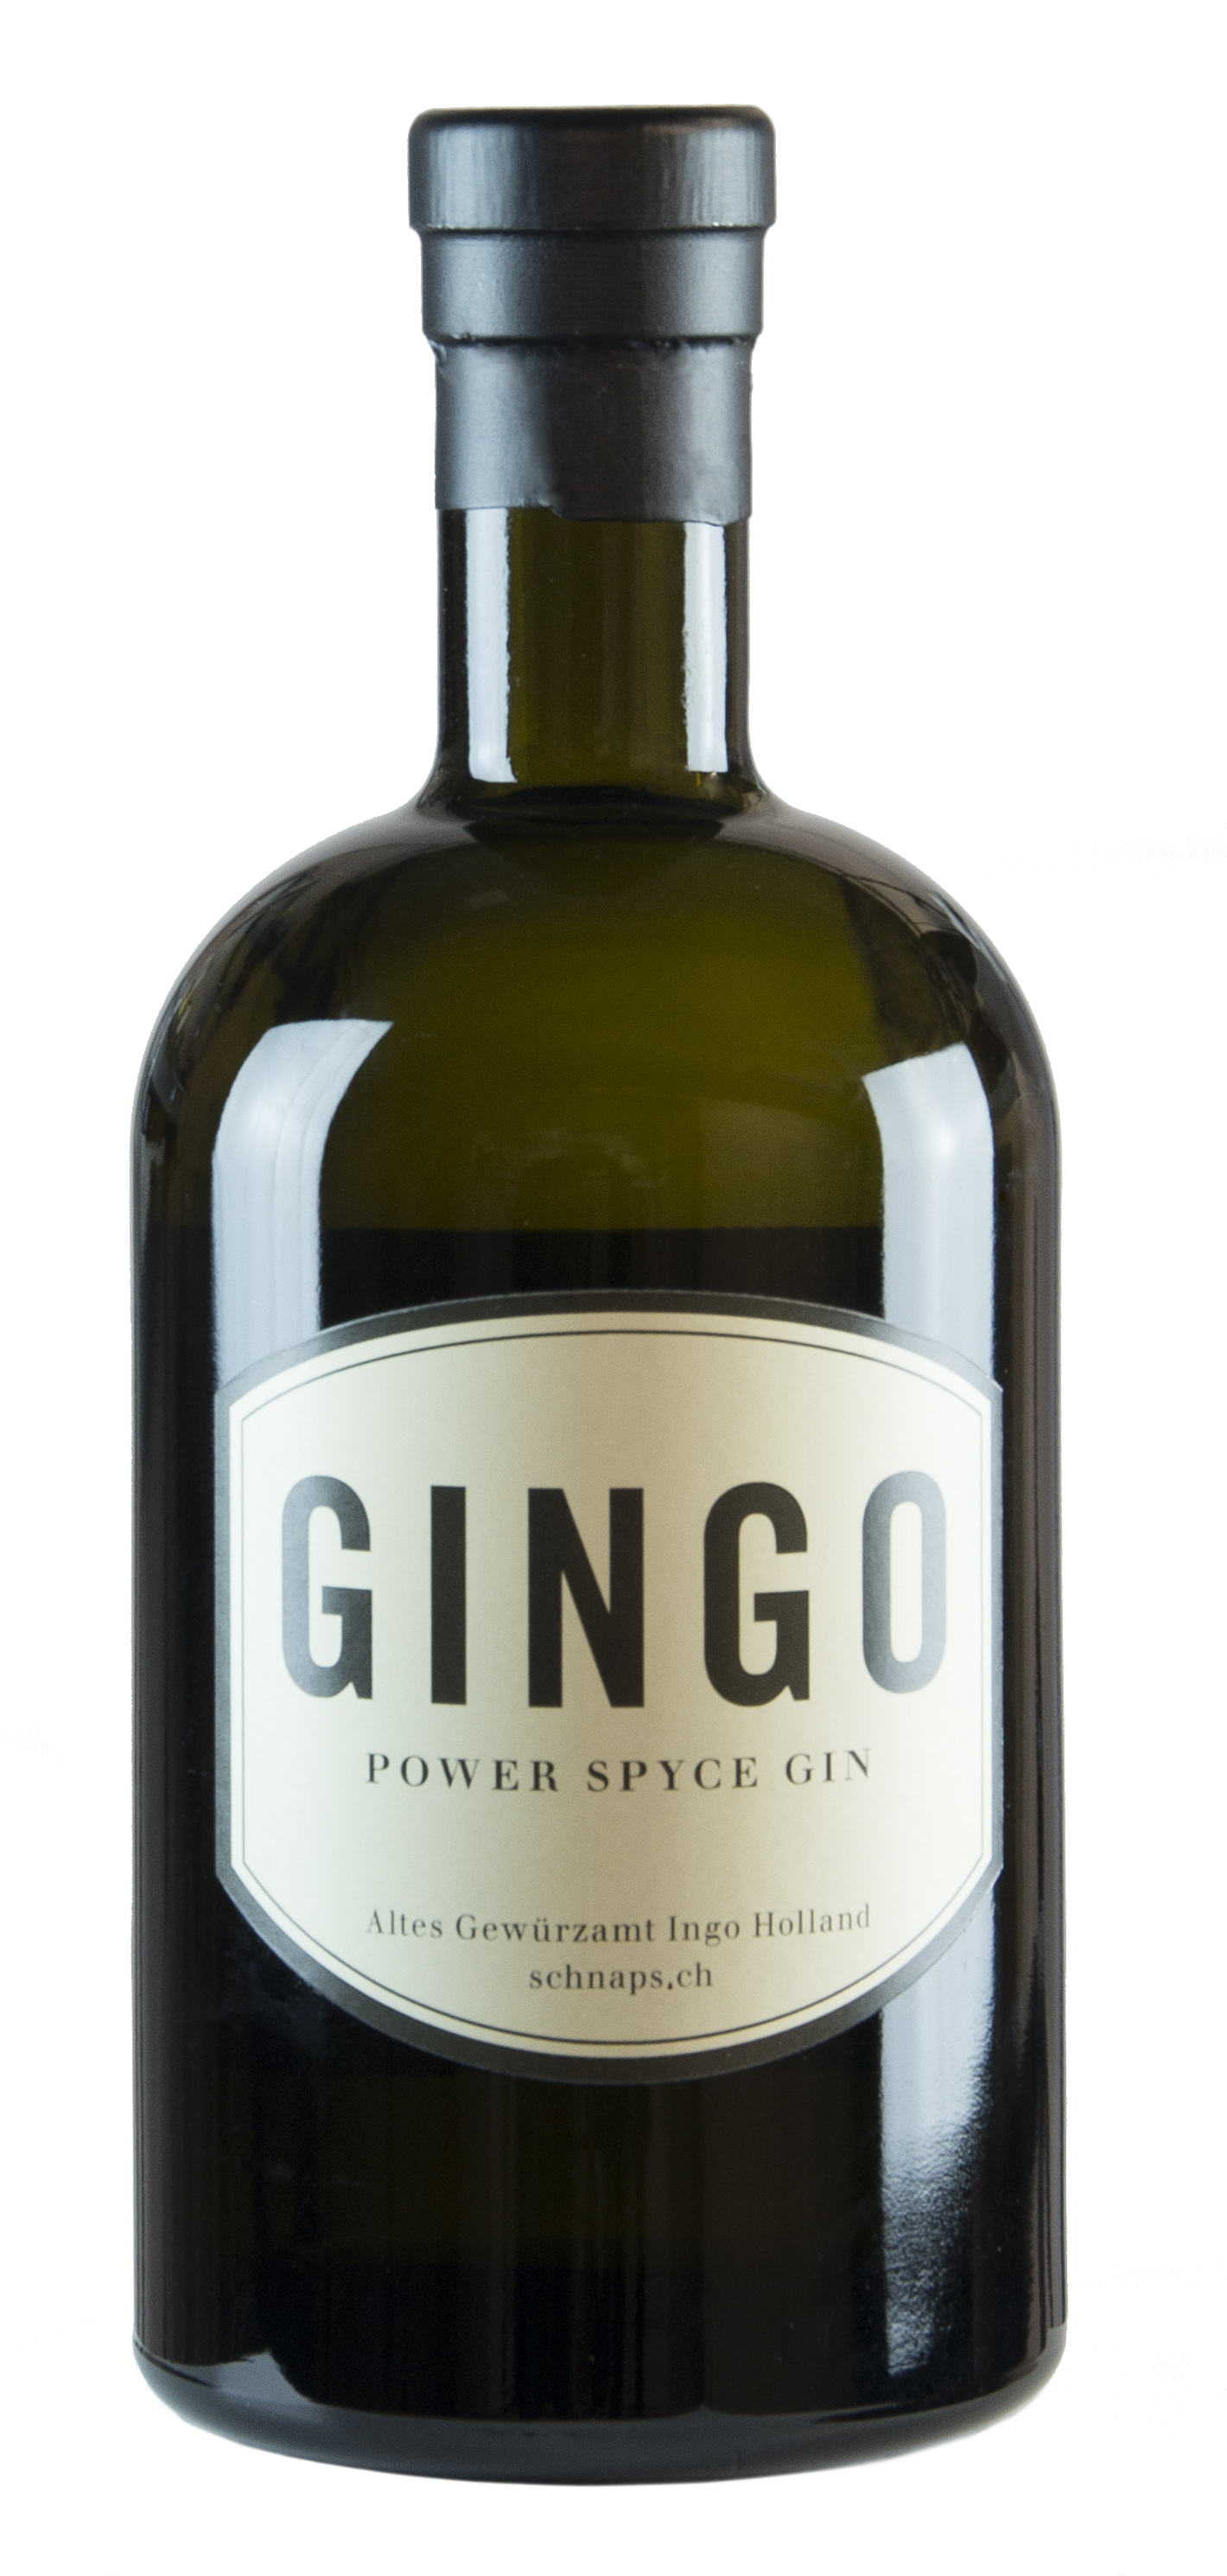 Gingo Power Spyce Gin